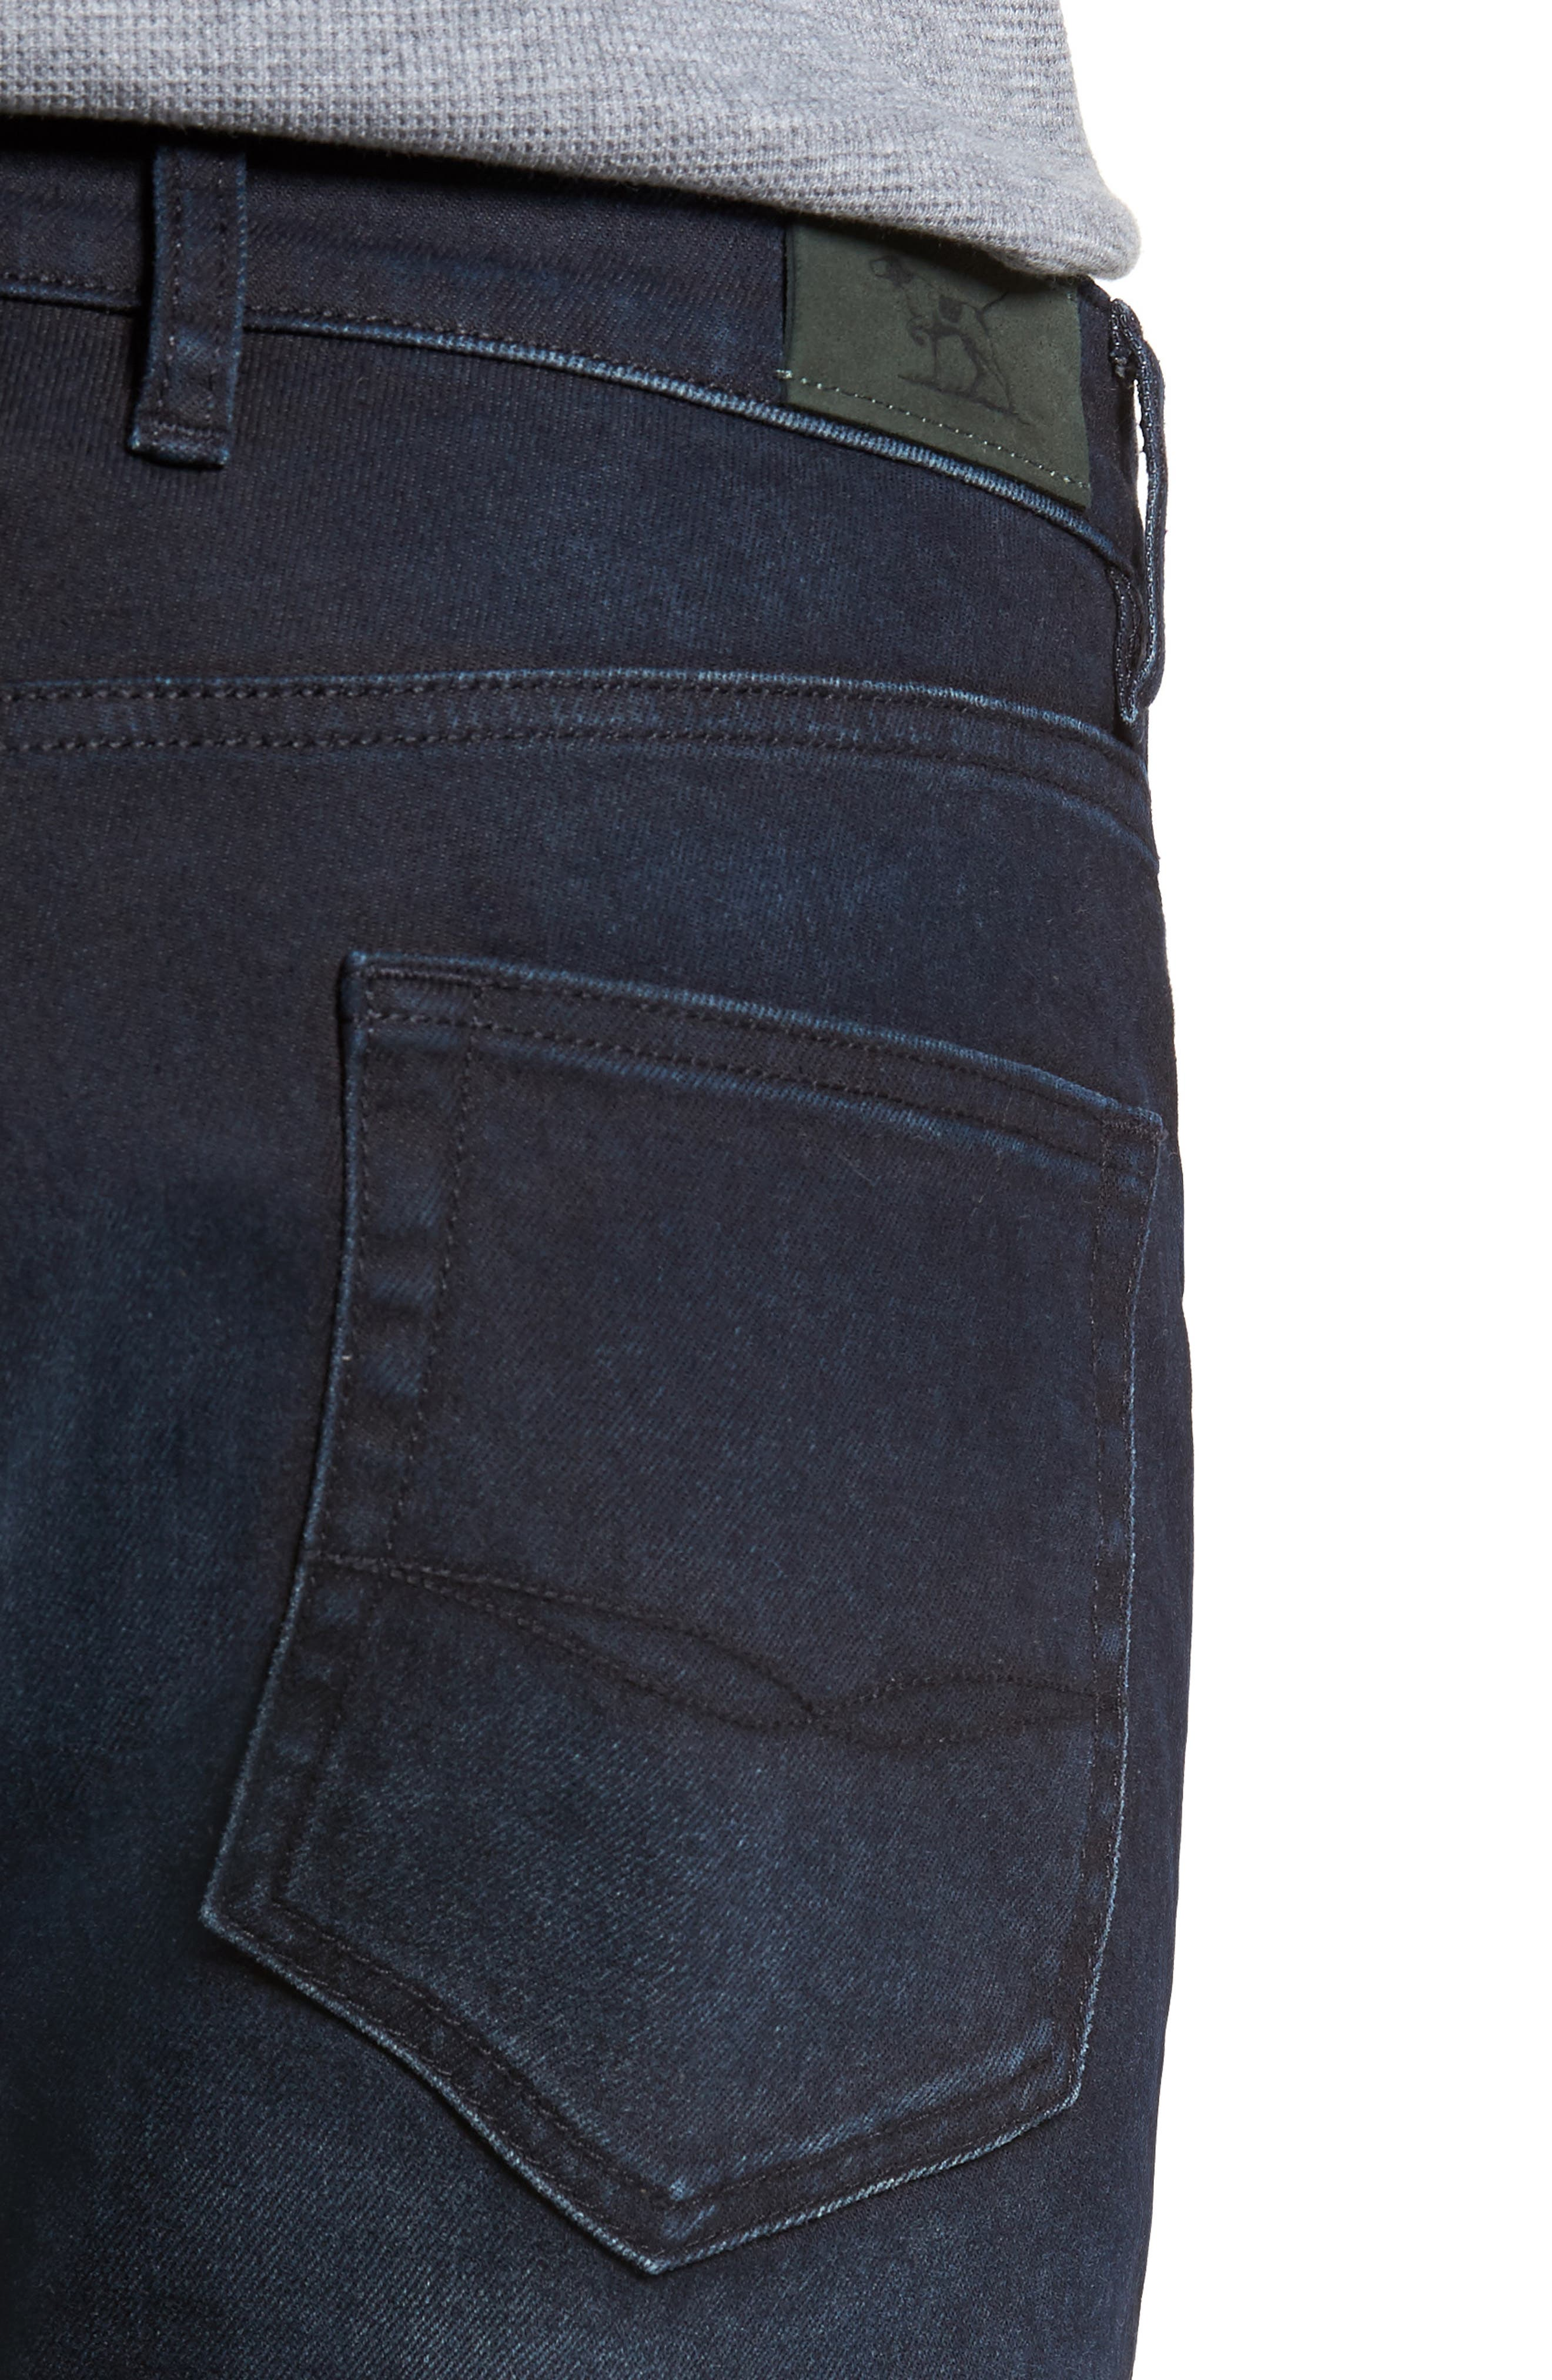 Mapleton Slim Fit Jeans,                             Alternate thumbnail 4, color,                             Denim